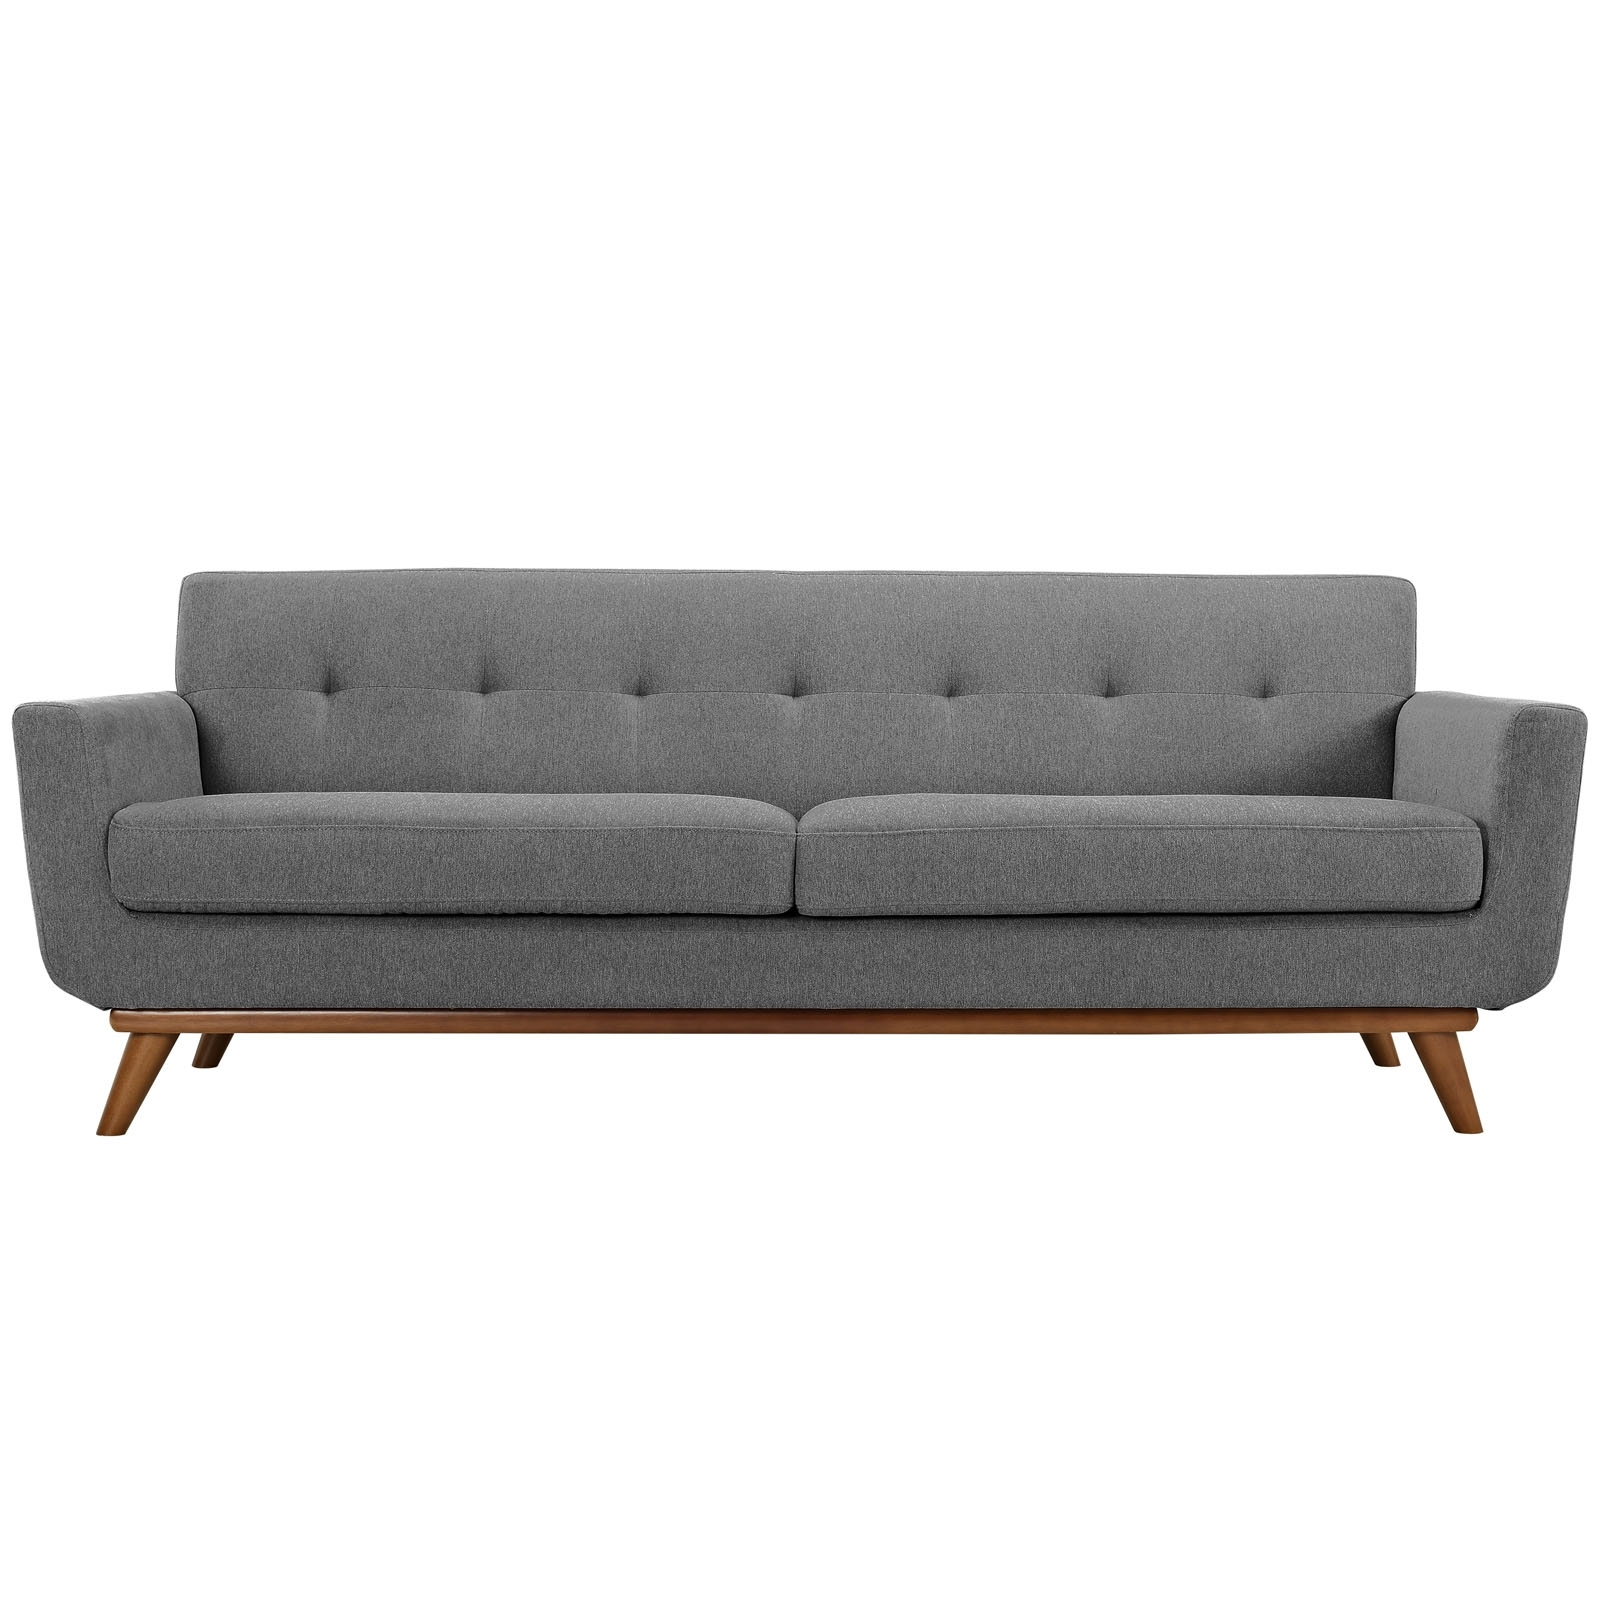 Sofas & Couches - Walmart intended for Sectional Sofas Under 700 (Image 14 of 15)